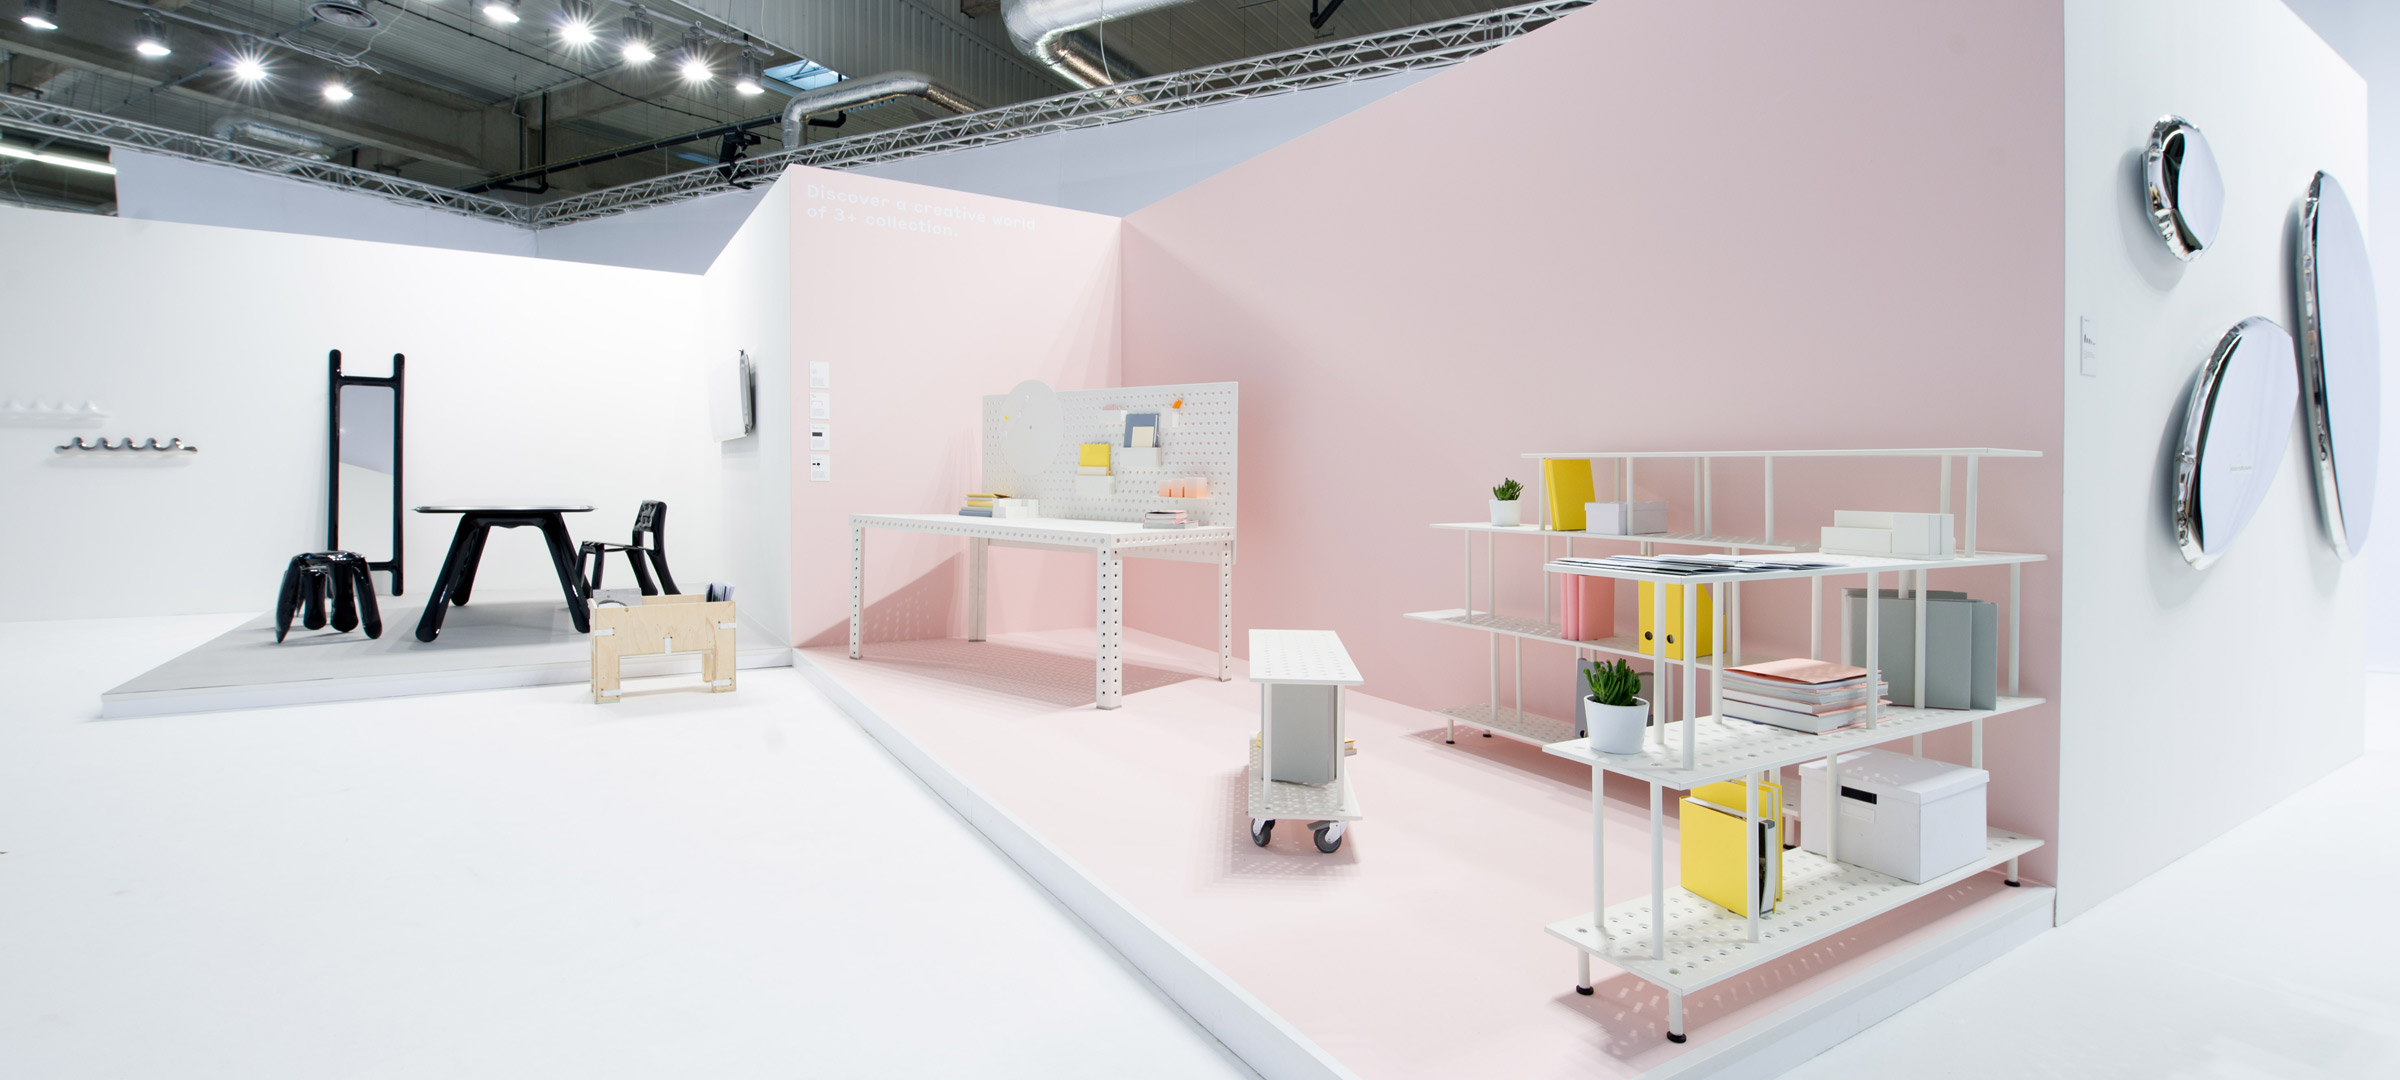 warsaw_home_expo1